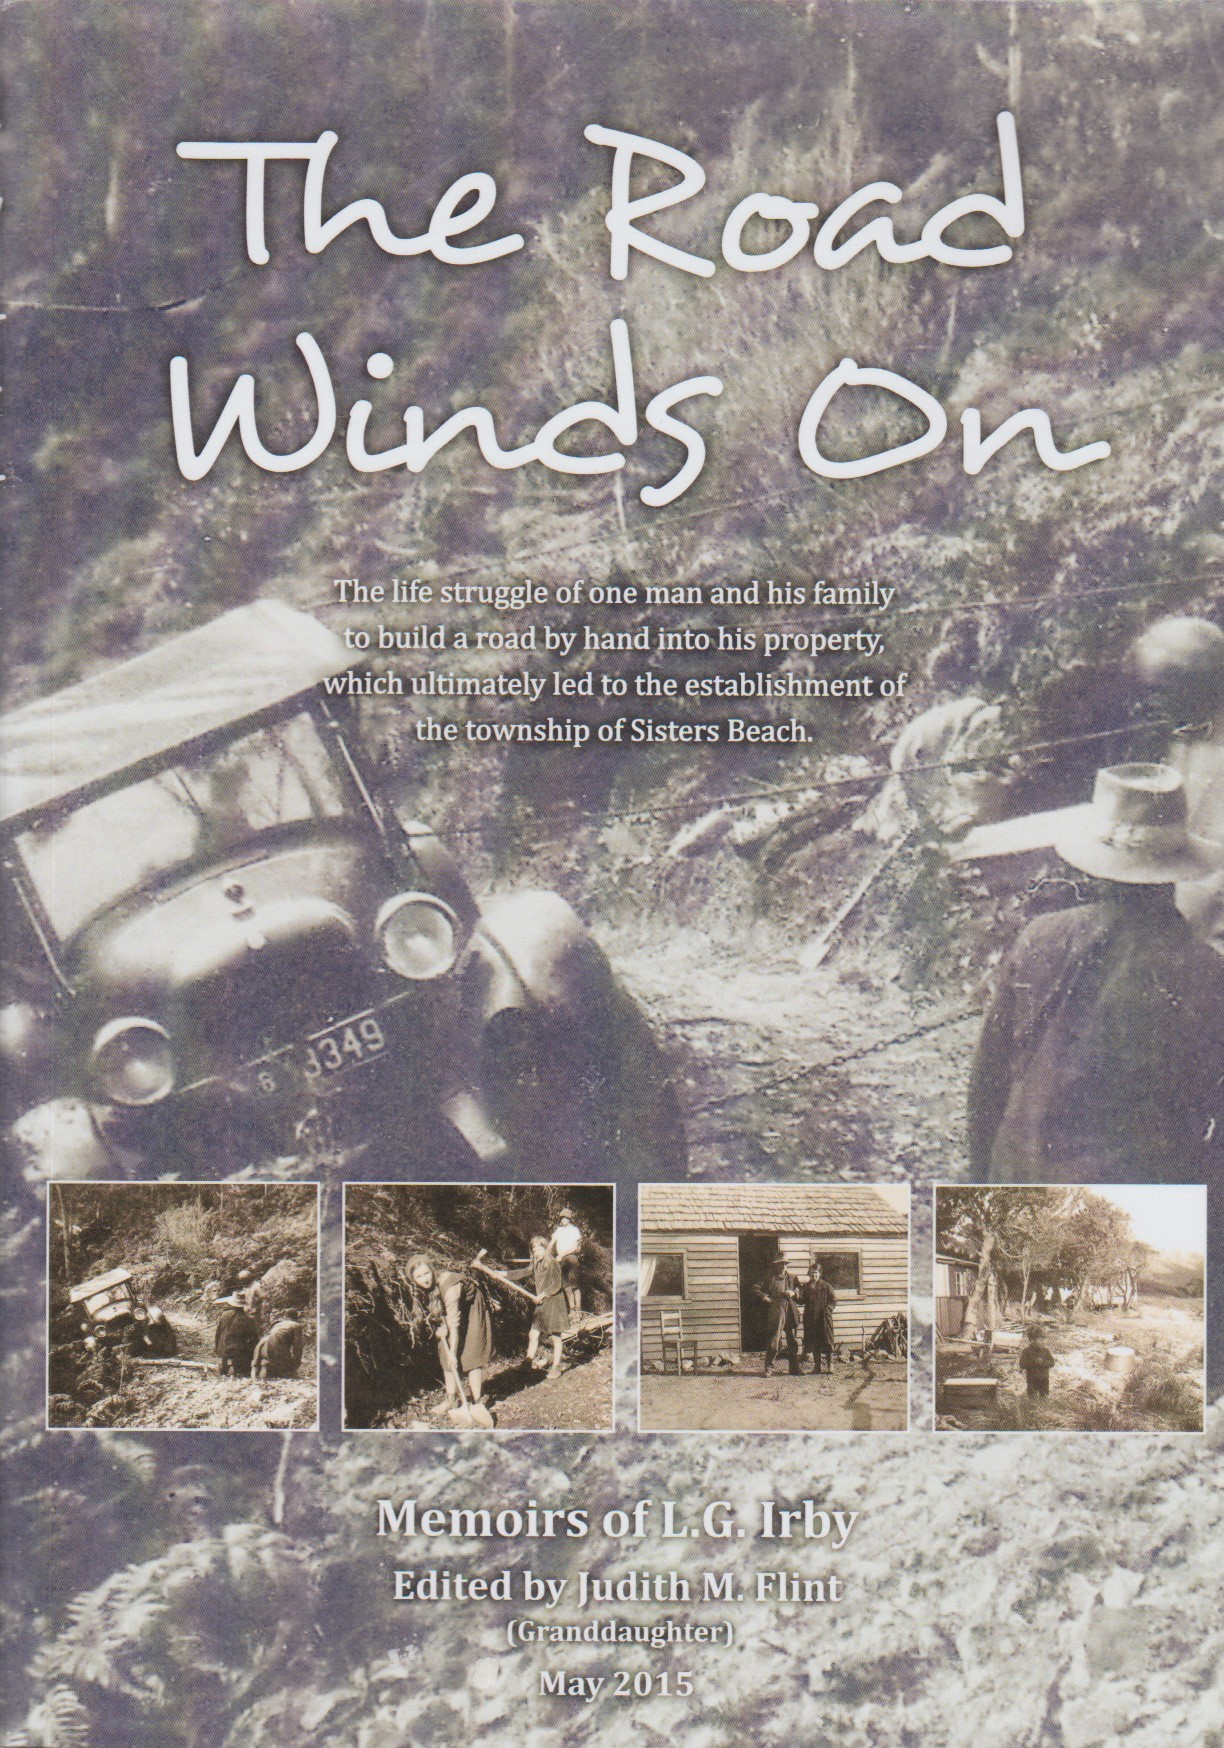 The Road Winds On - Sisters Beach memoirs of LG Irby